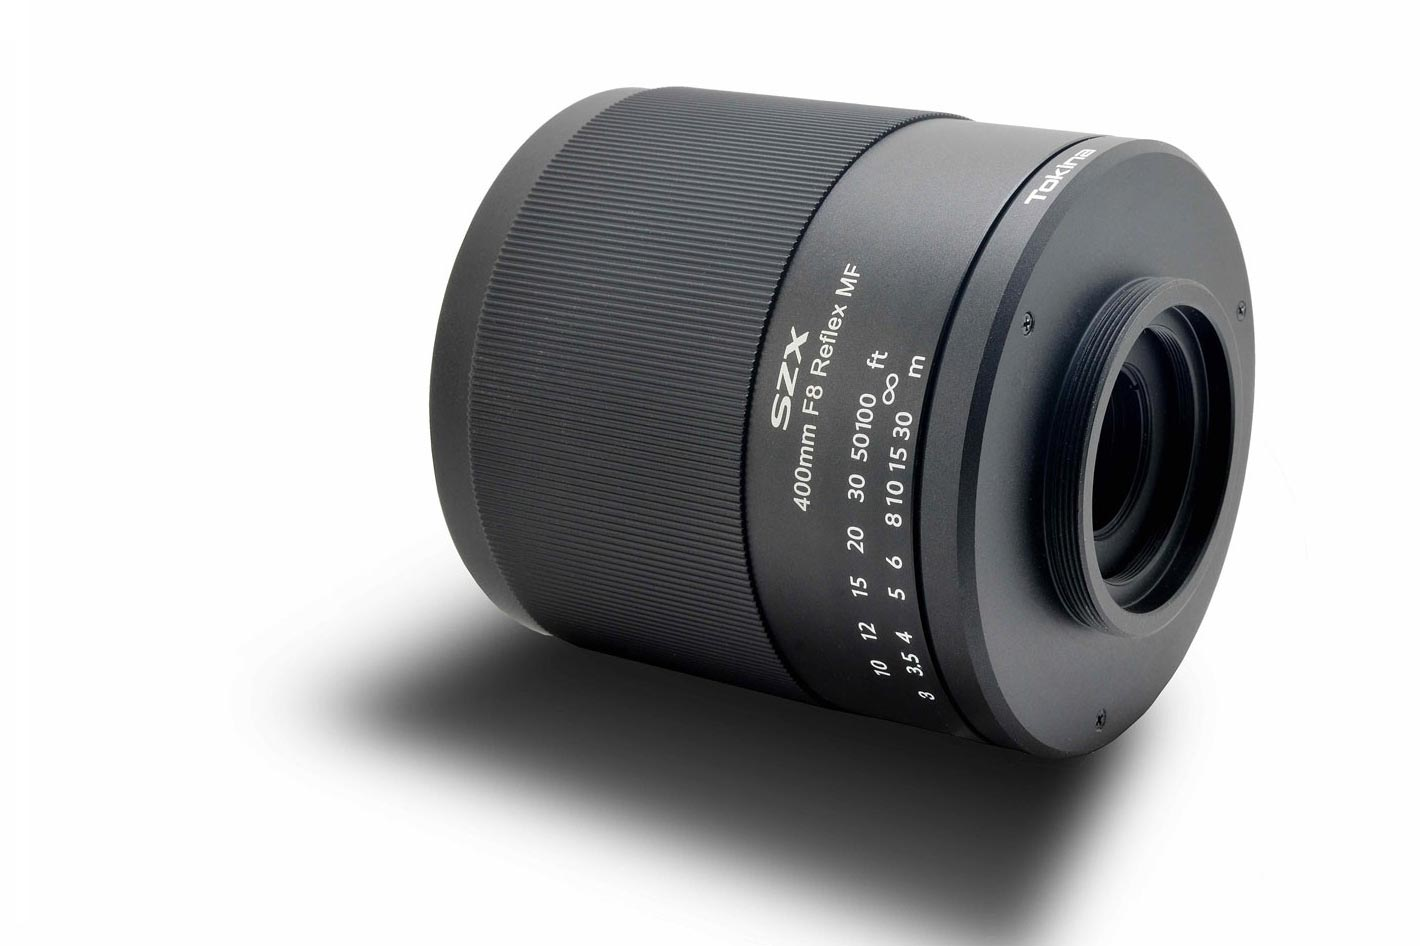 Tokina SZX SUPER TELE 400mm F8 Reflex MF, a new mirror lens